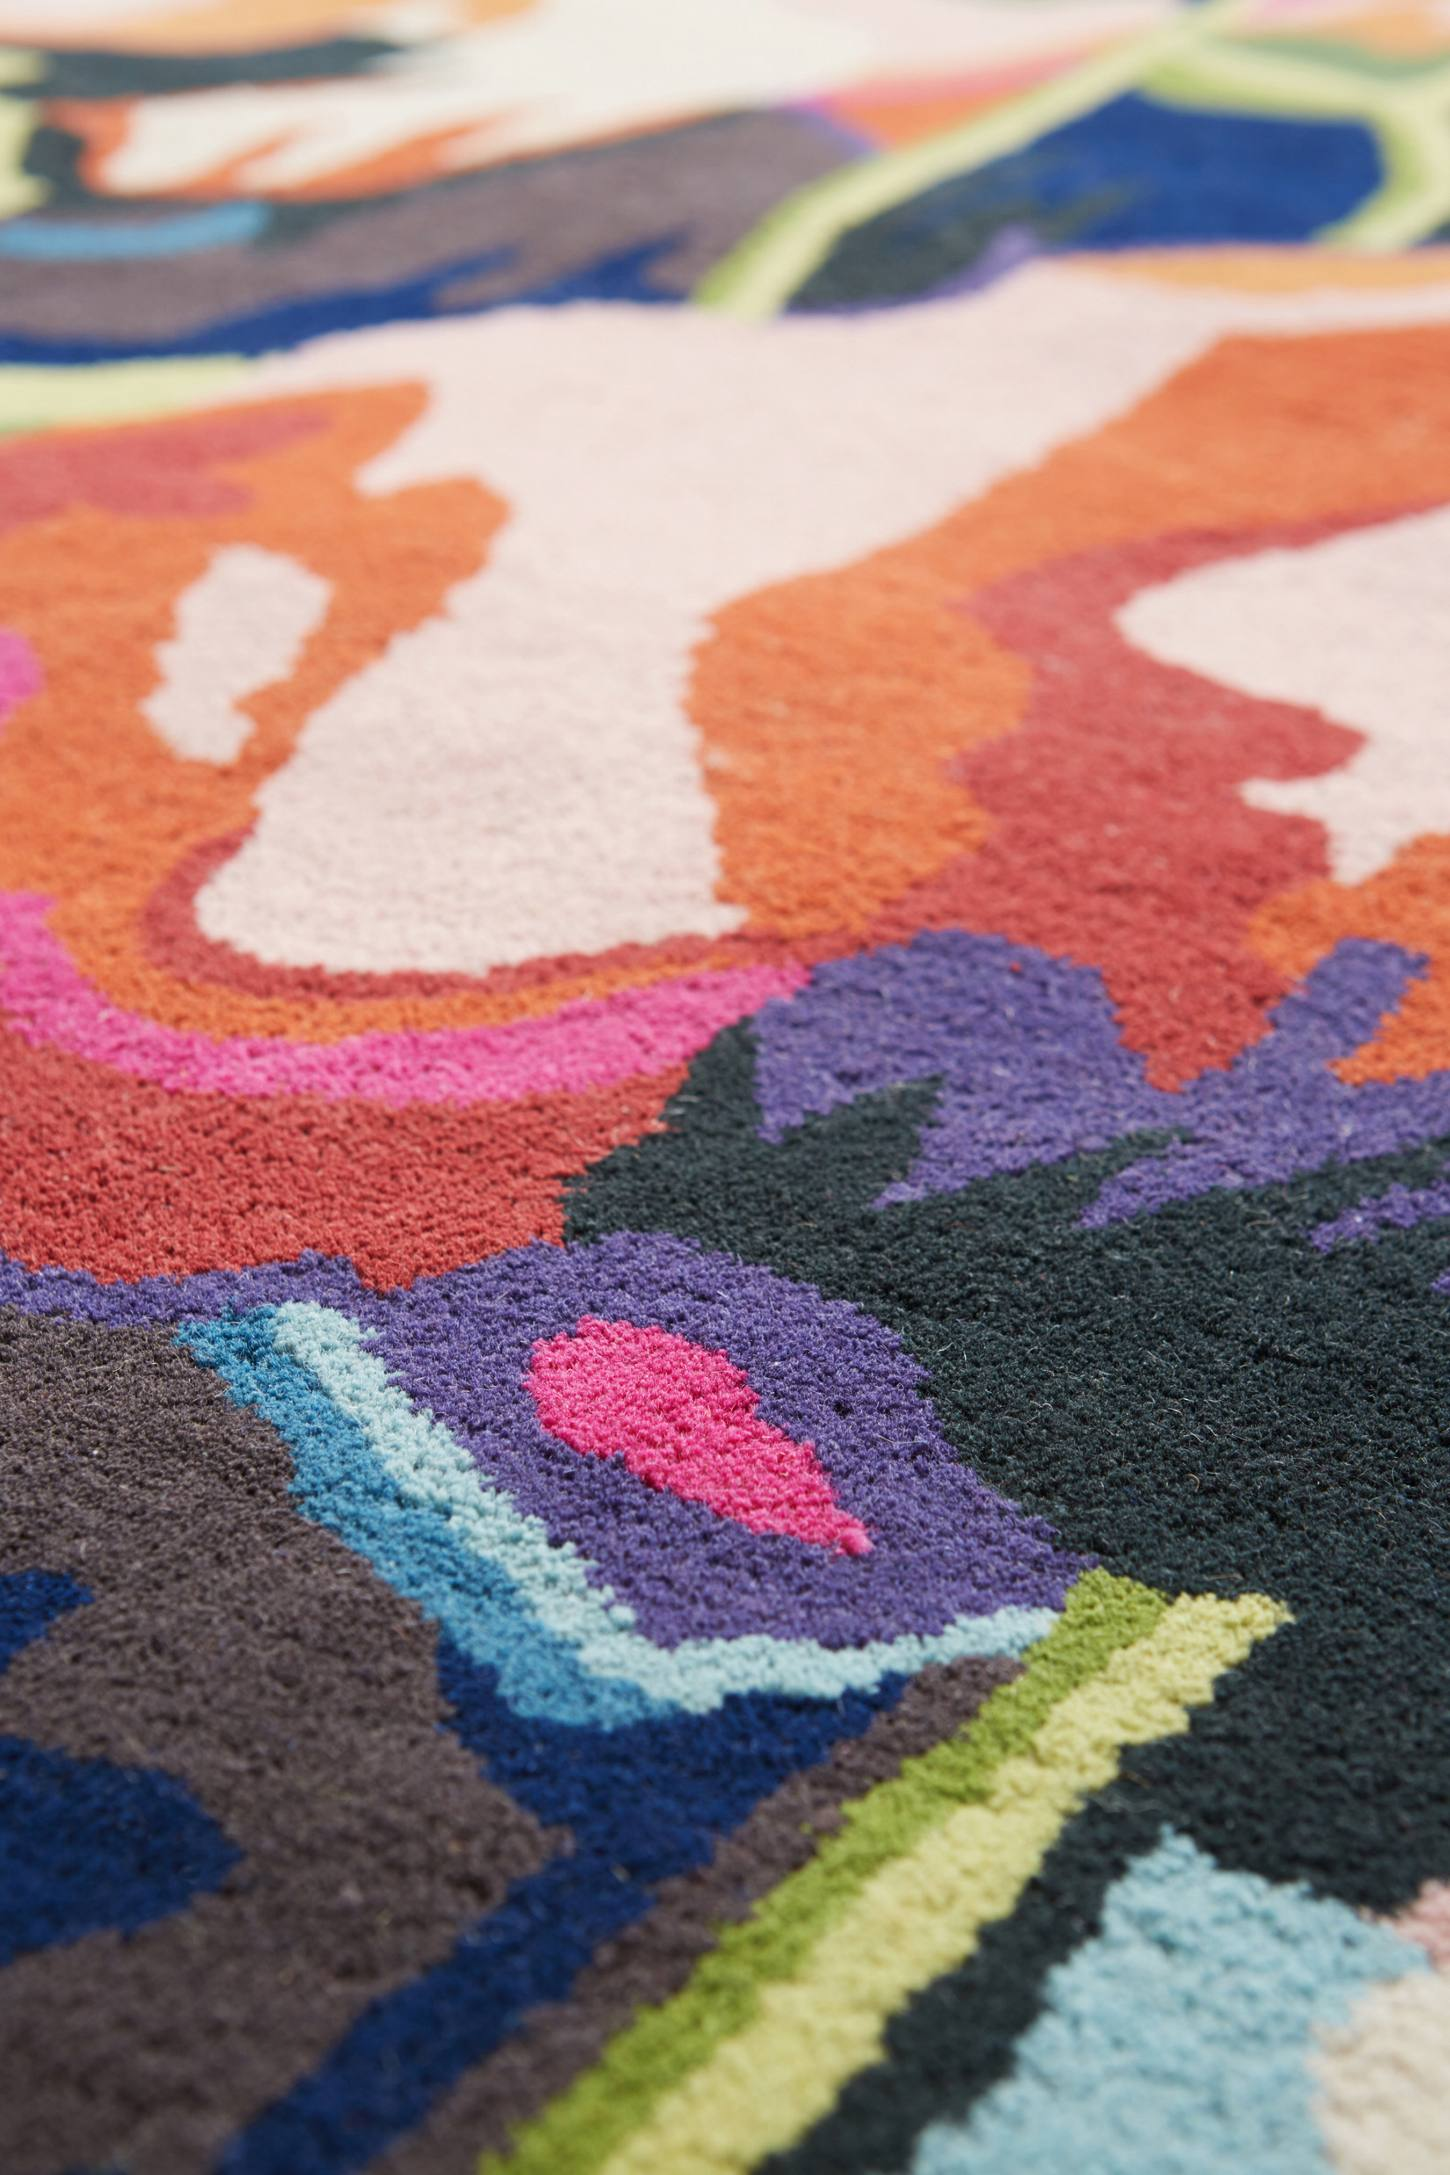 Slide View: 2: Brilliant Poppies Rug